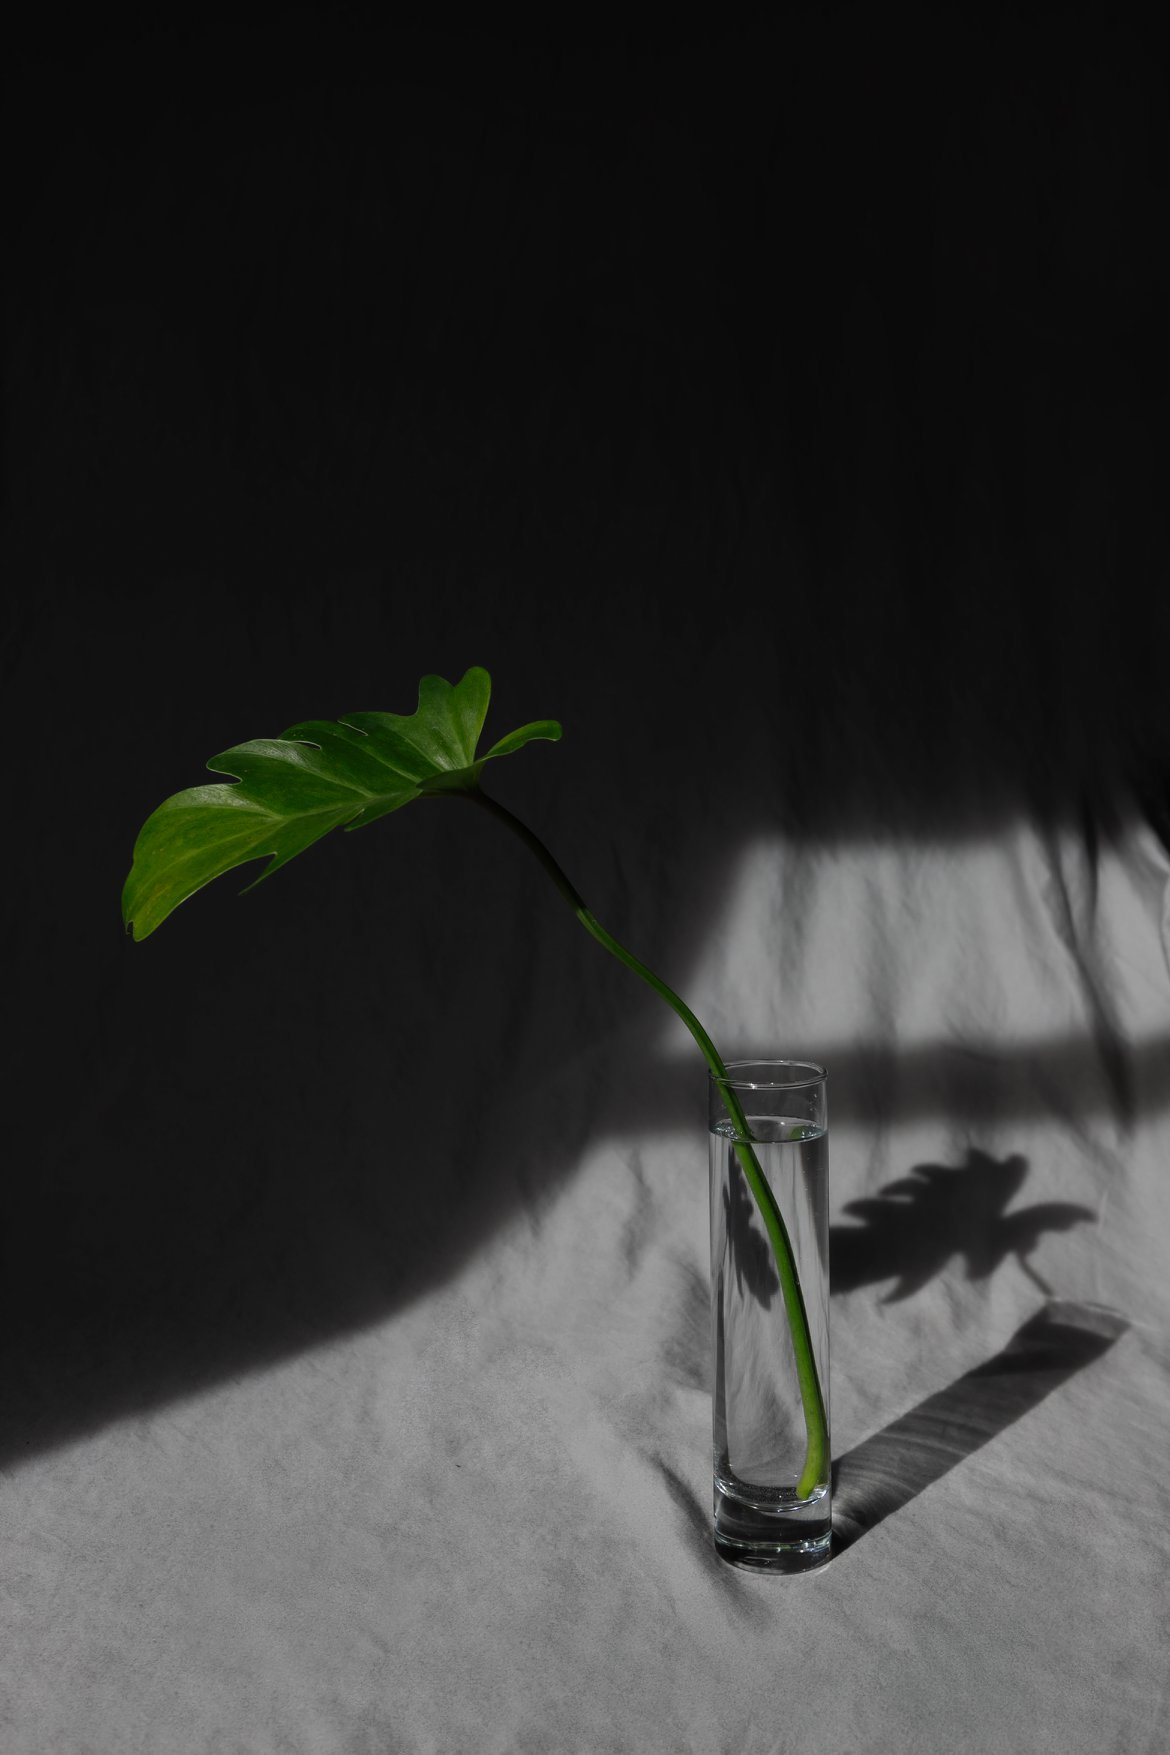 still life plant leaf xanandu harsh light shadows